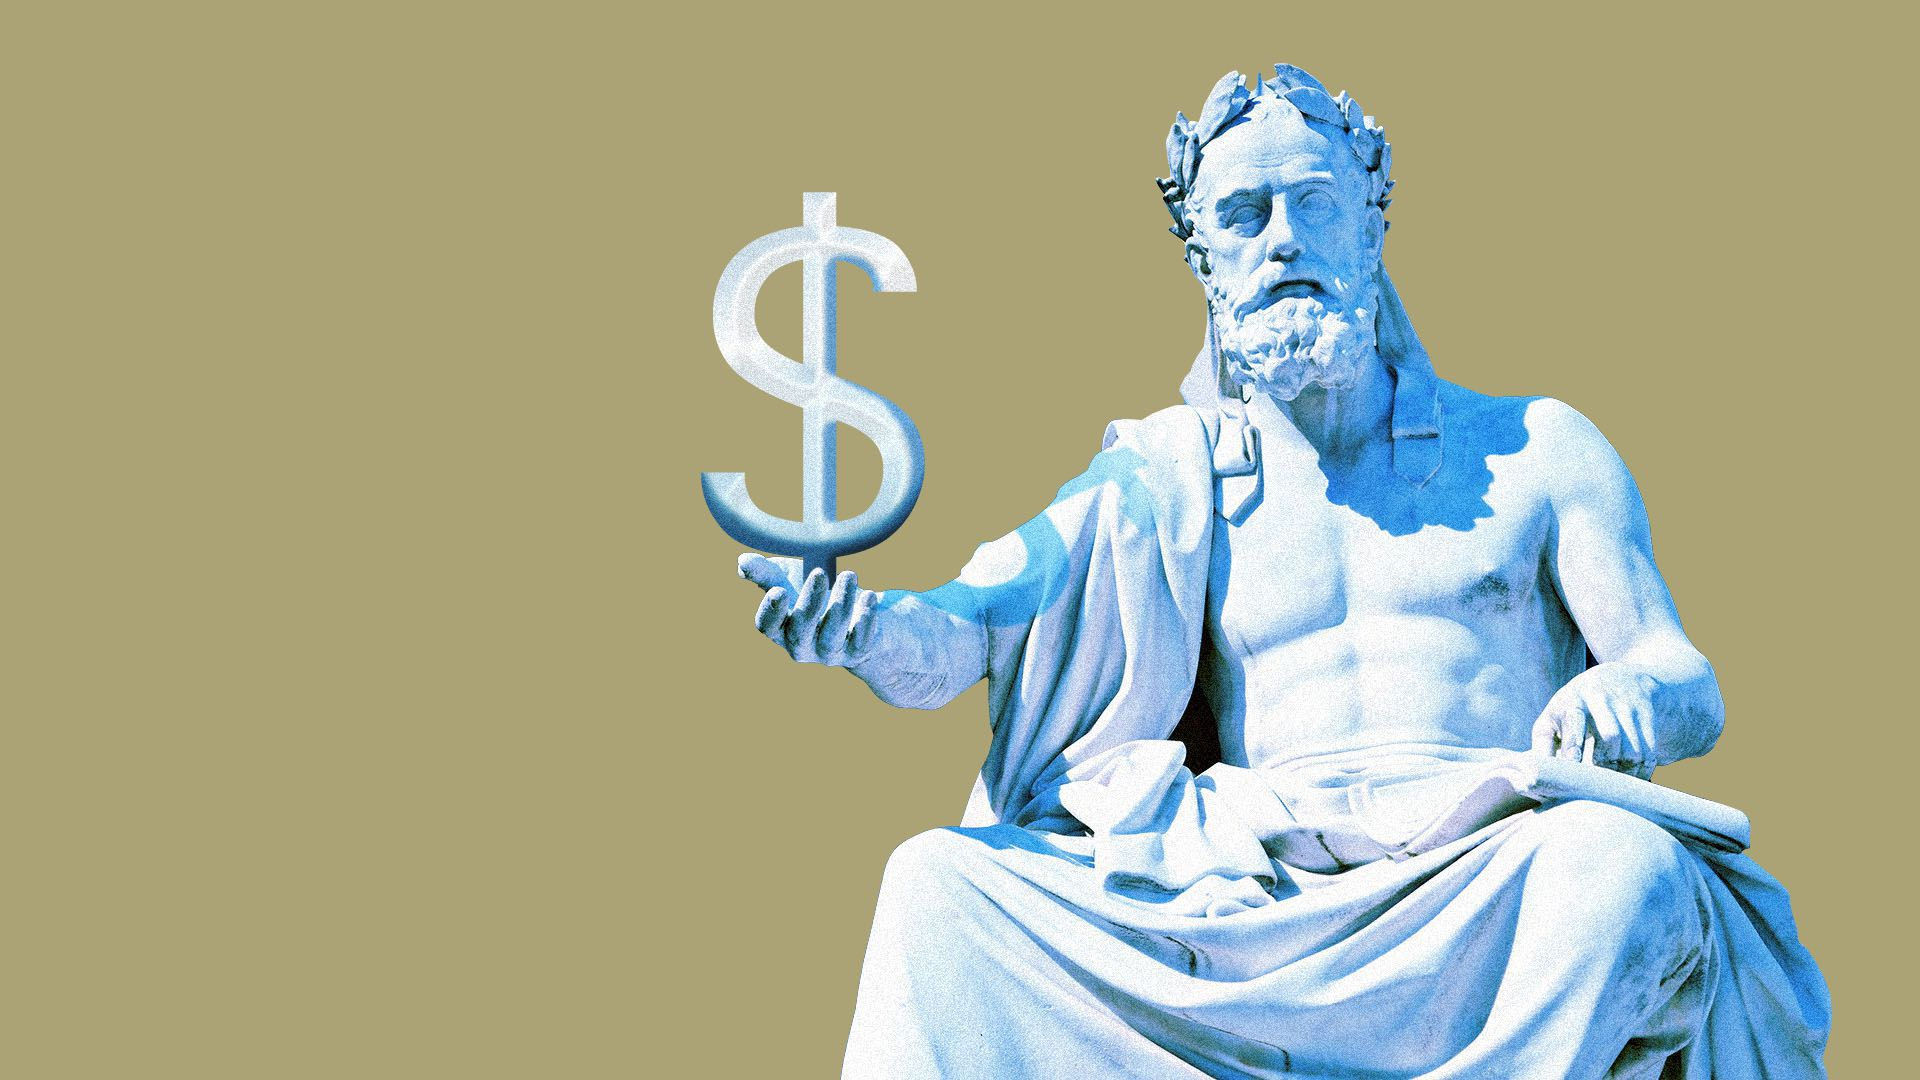 A Greek statue holding a dollar sign.